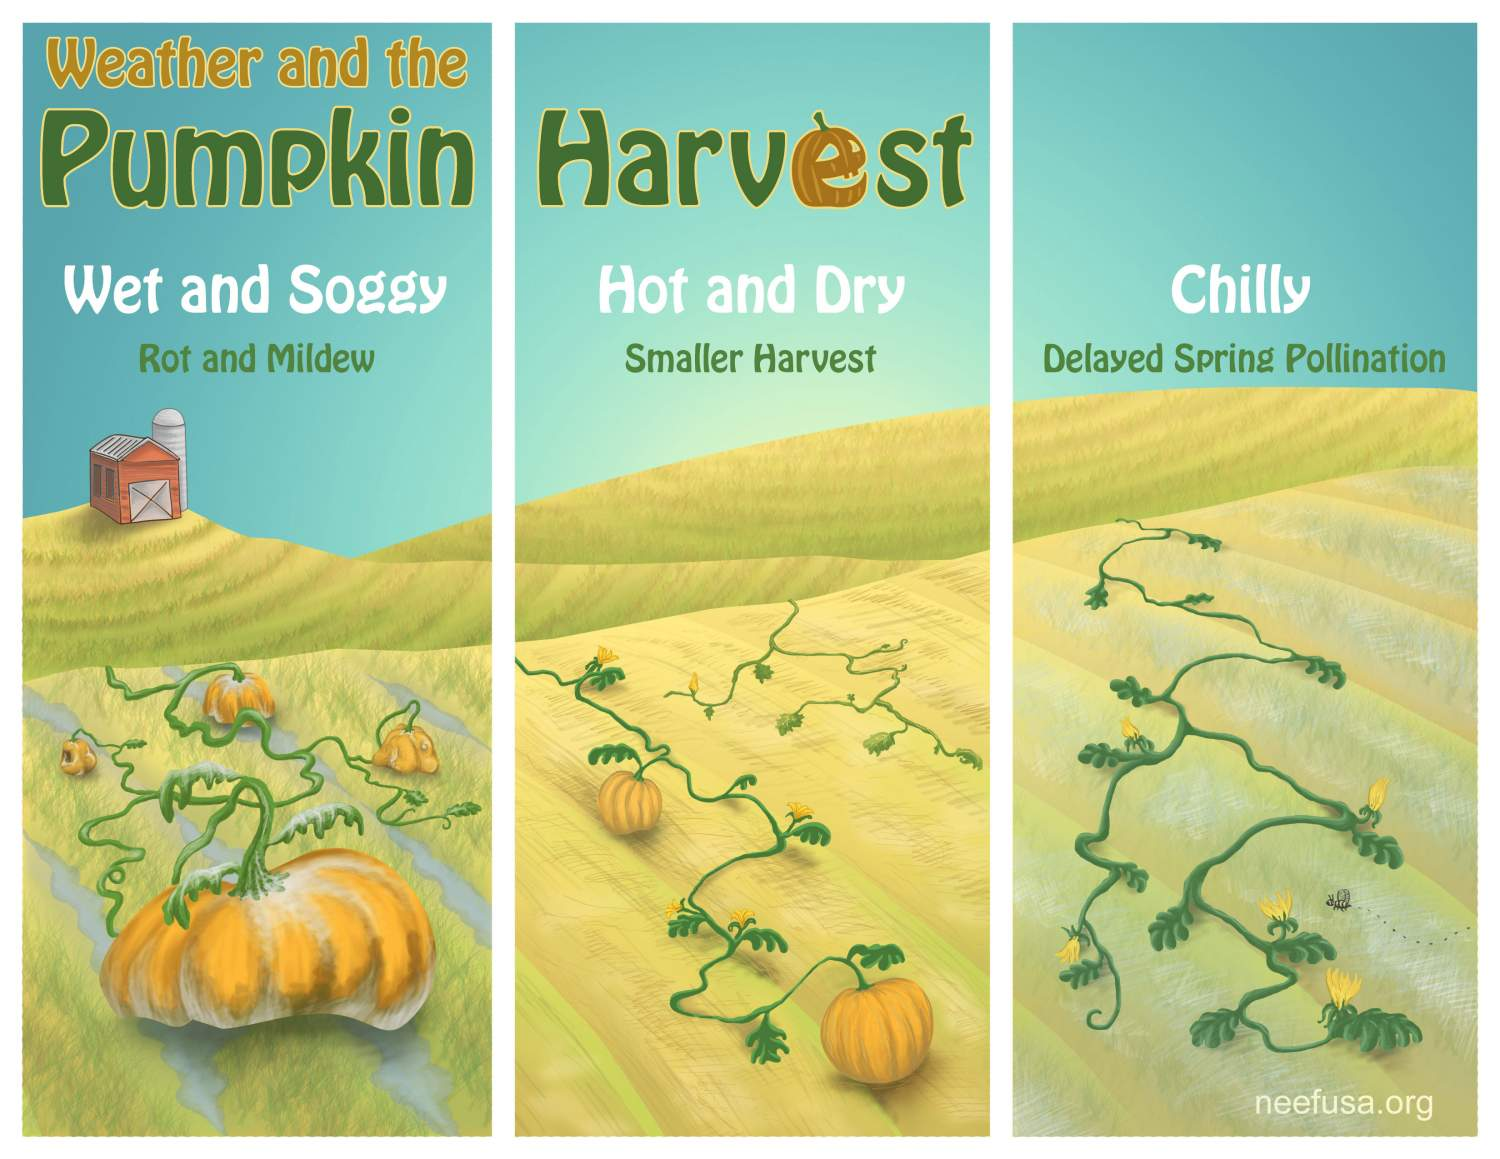 Weather and the Pumpkin Harvest